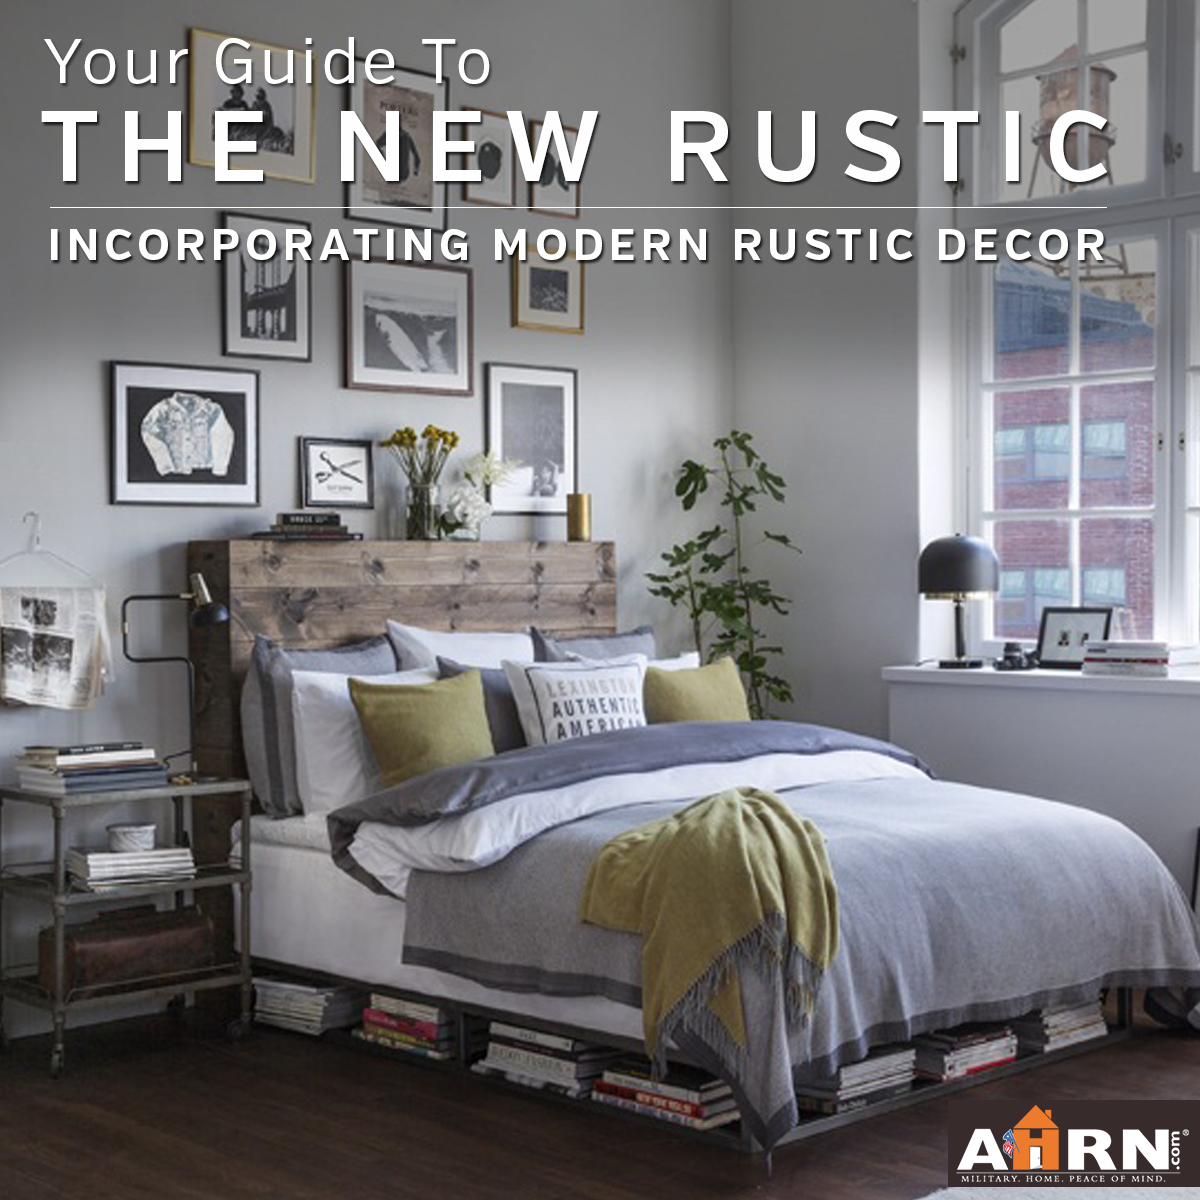 Your Guide To The New Modern Rustic At AHRN.com